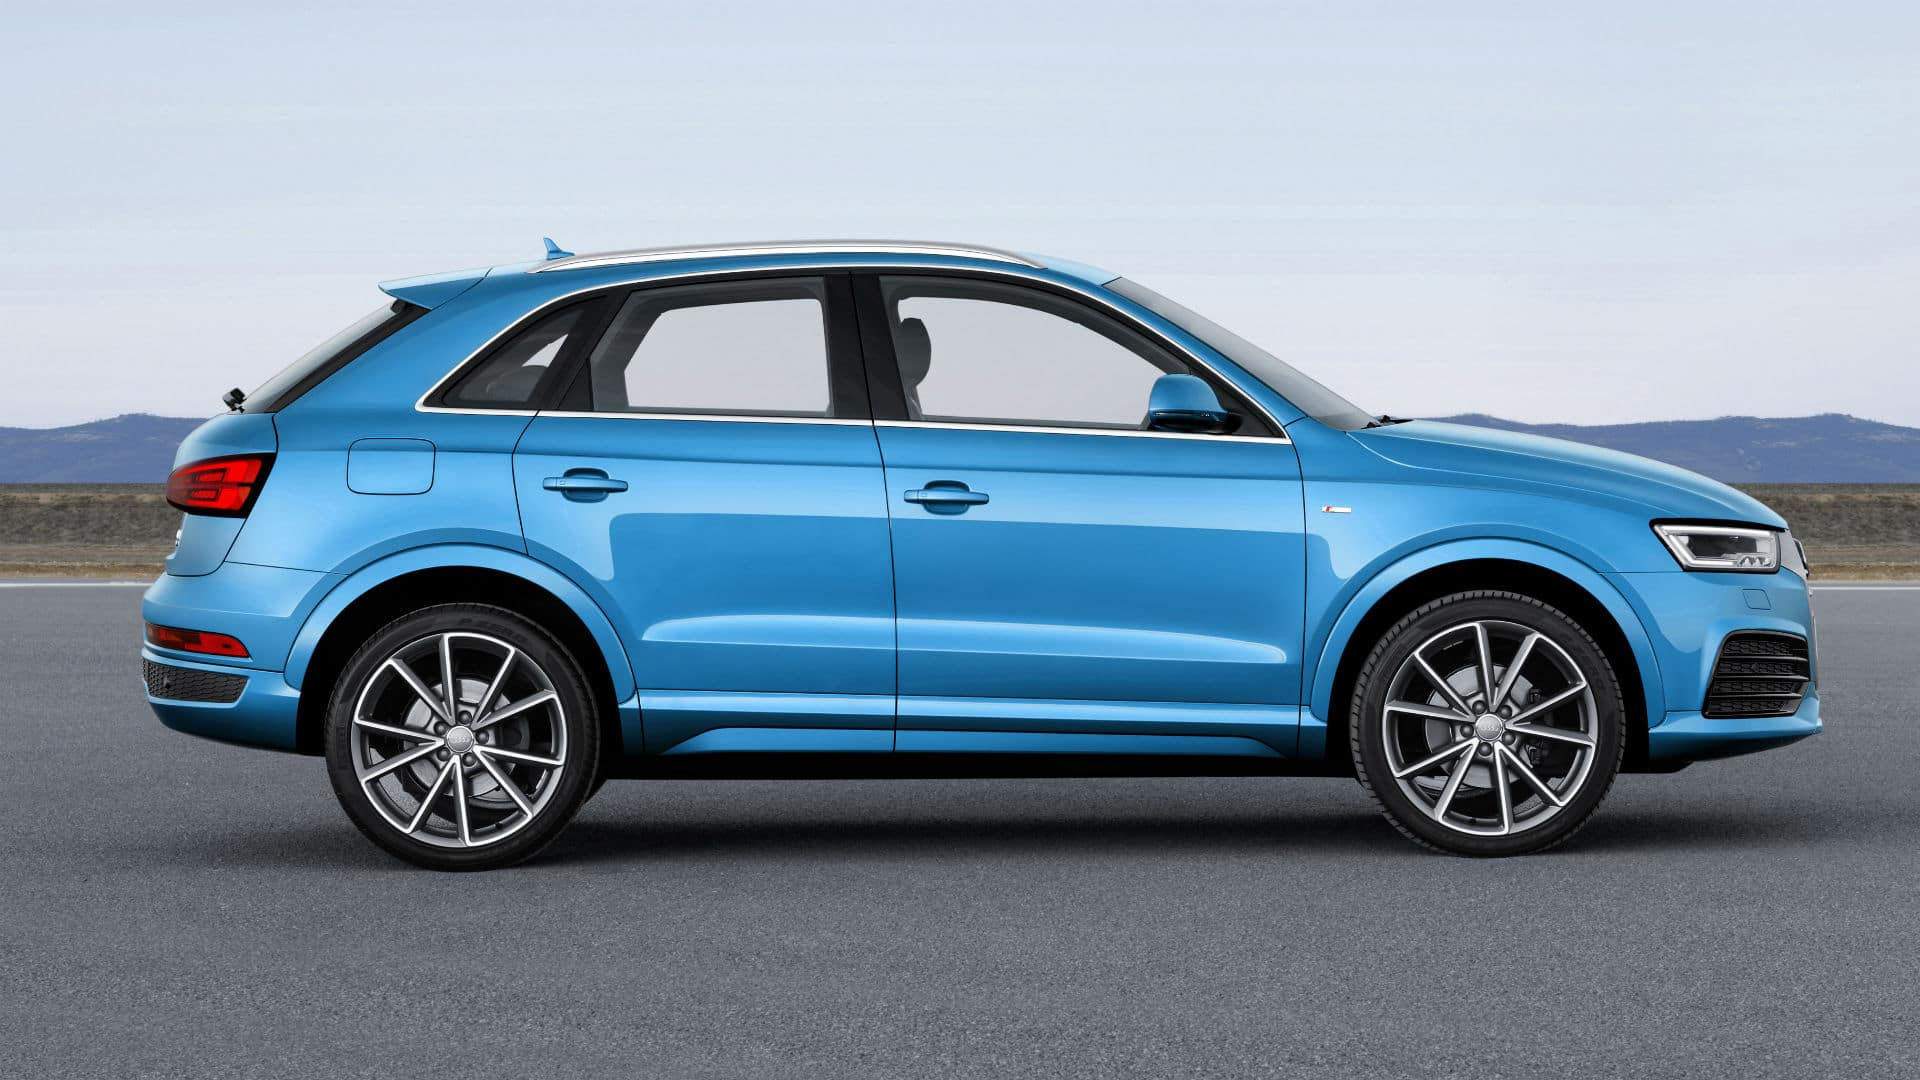 the as audi in suv smallest quarter news geneva more rear arrives automobile brand three brands s show small